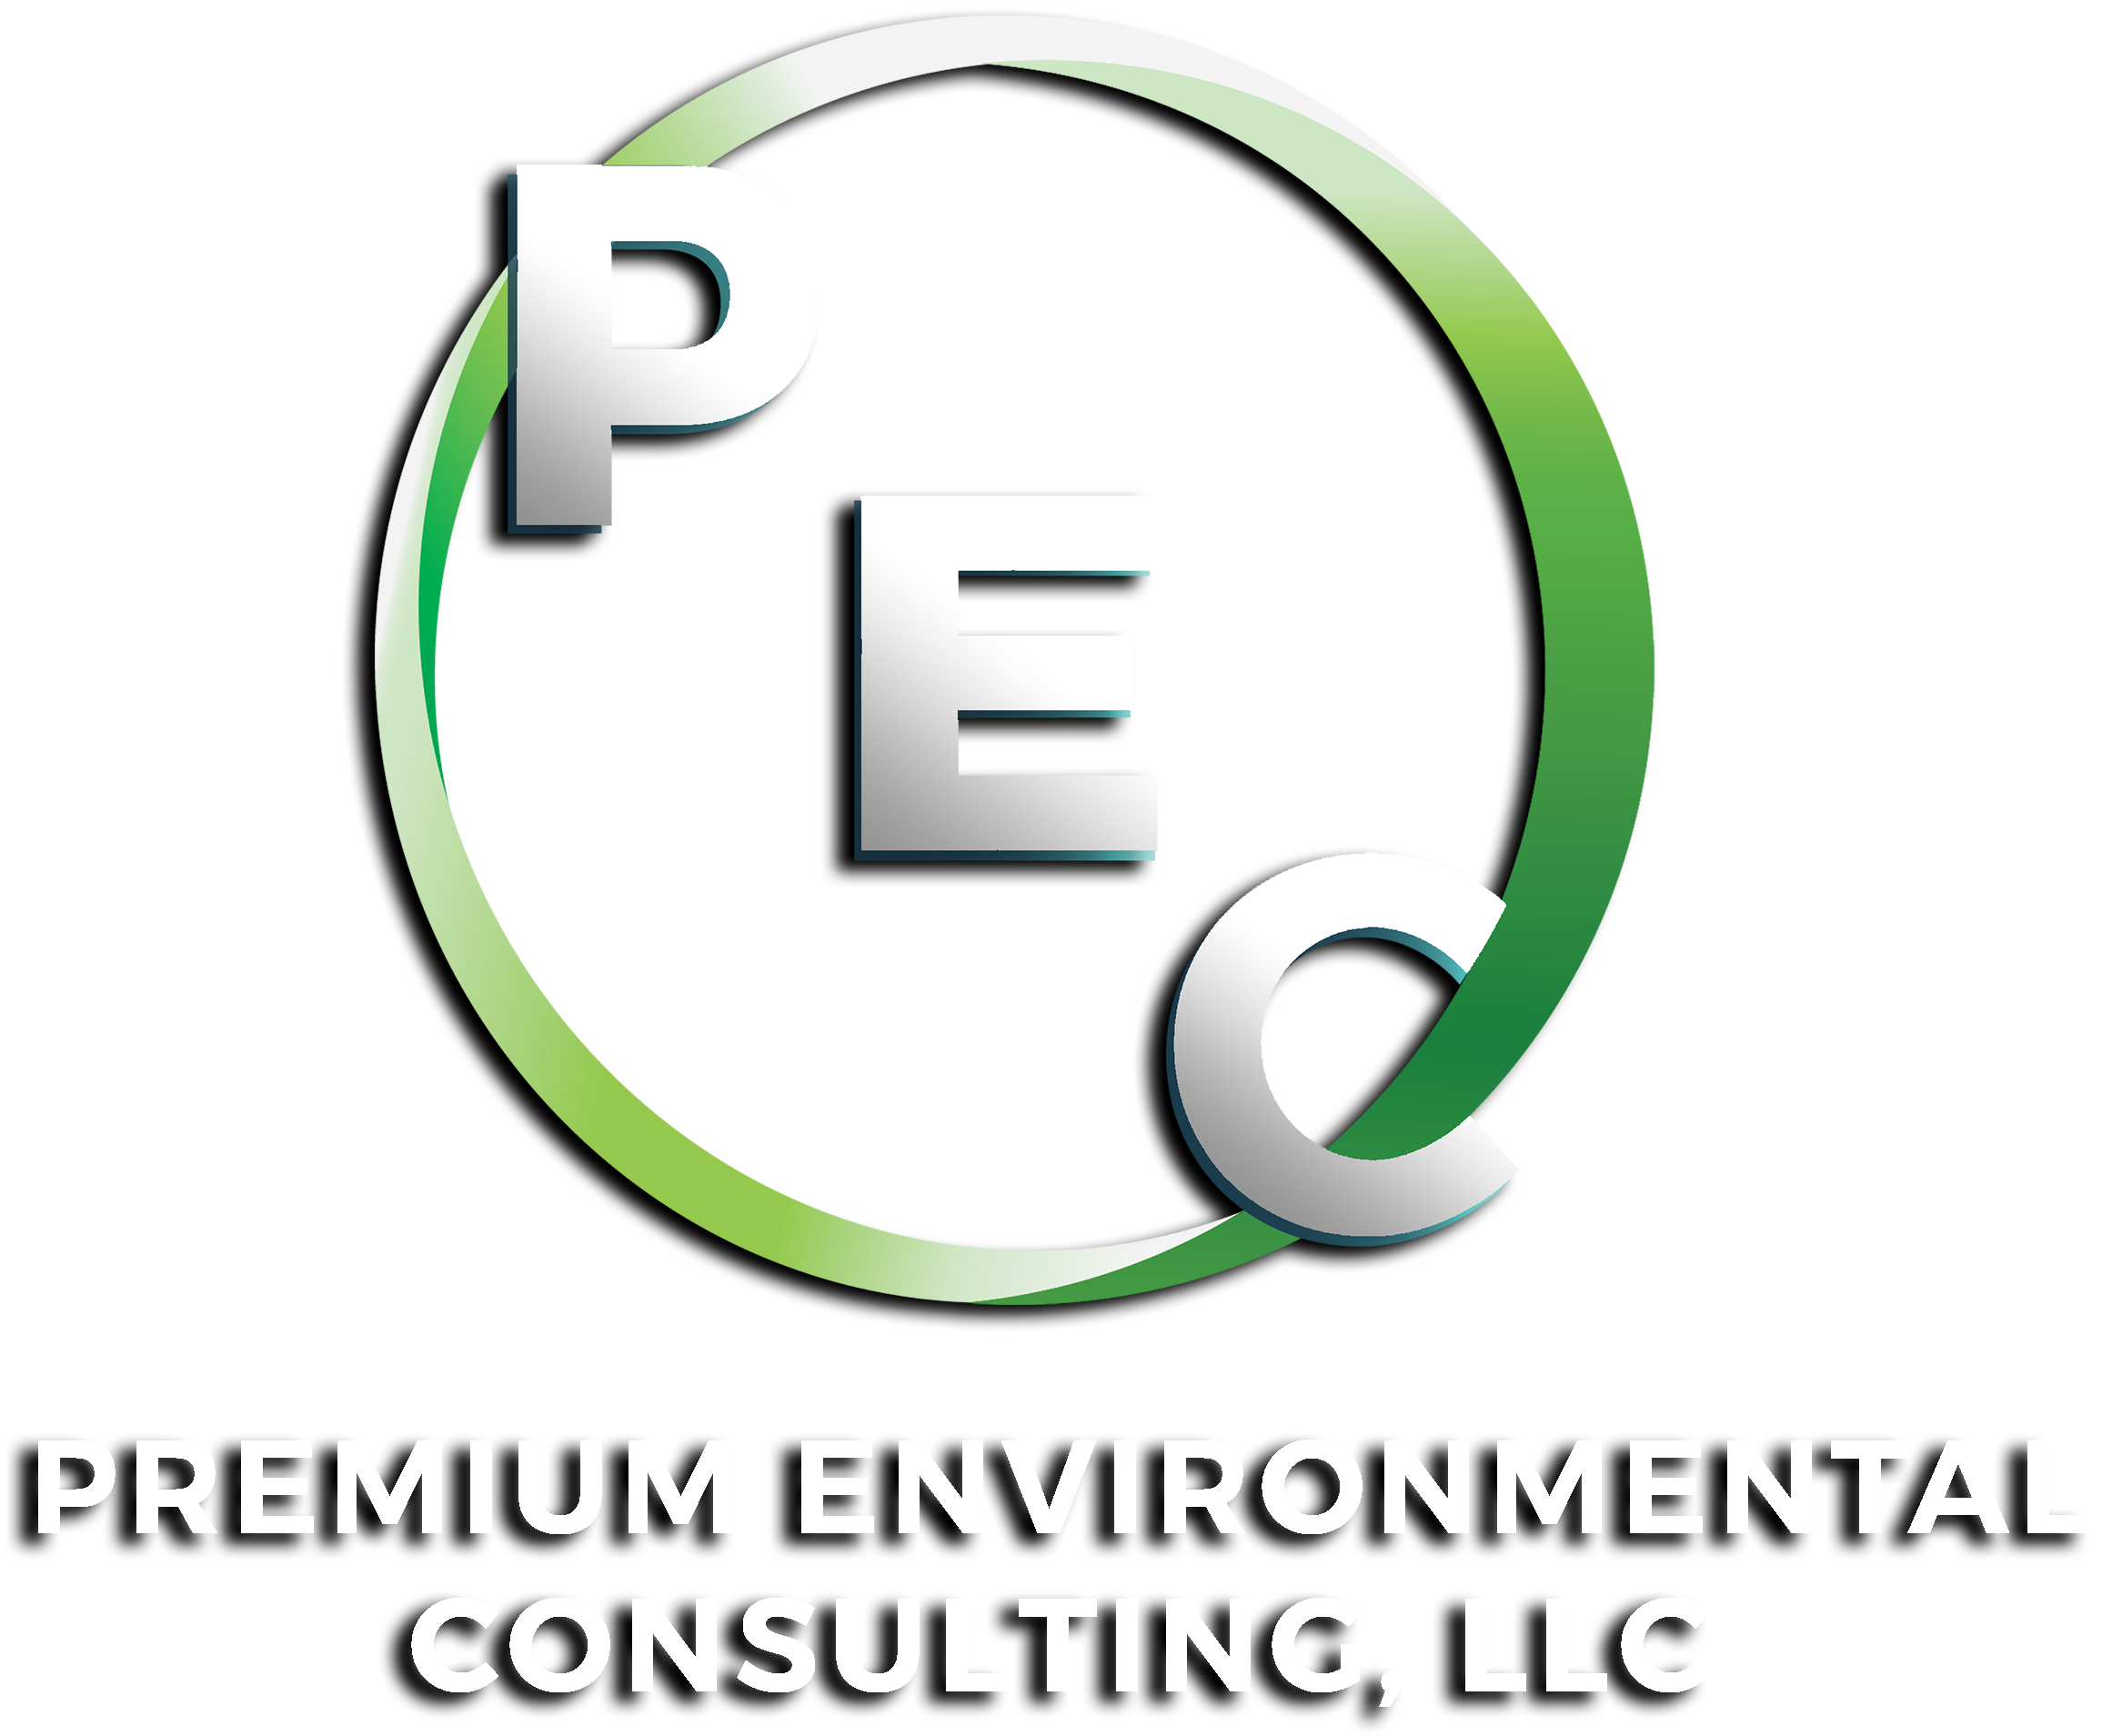 Premium Environmental Consulting, LLC